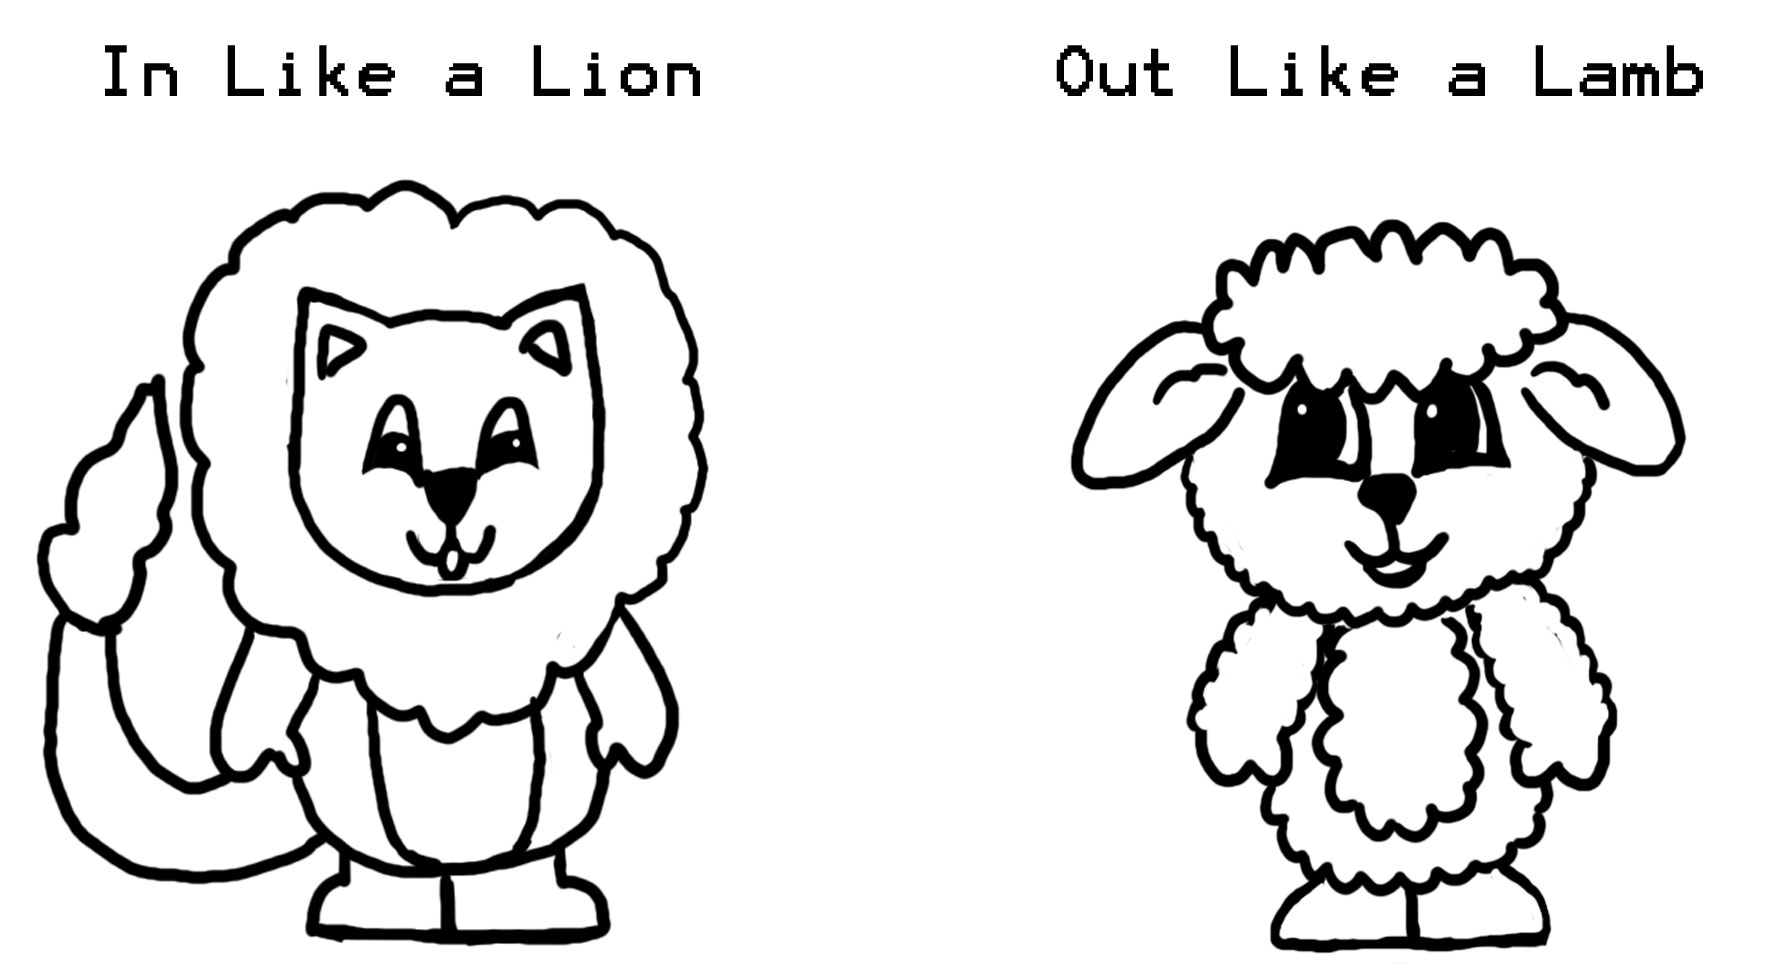 lion and lamb coloring page lion and lamb coloring pages collection free coloring sheets coloring page and lion lamb